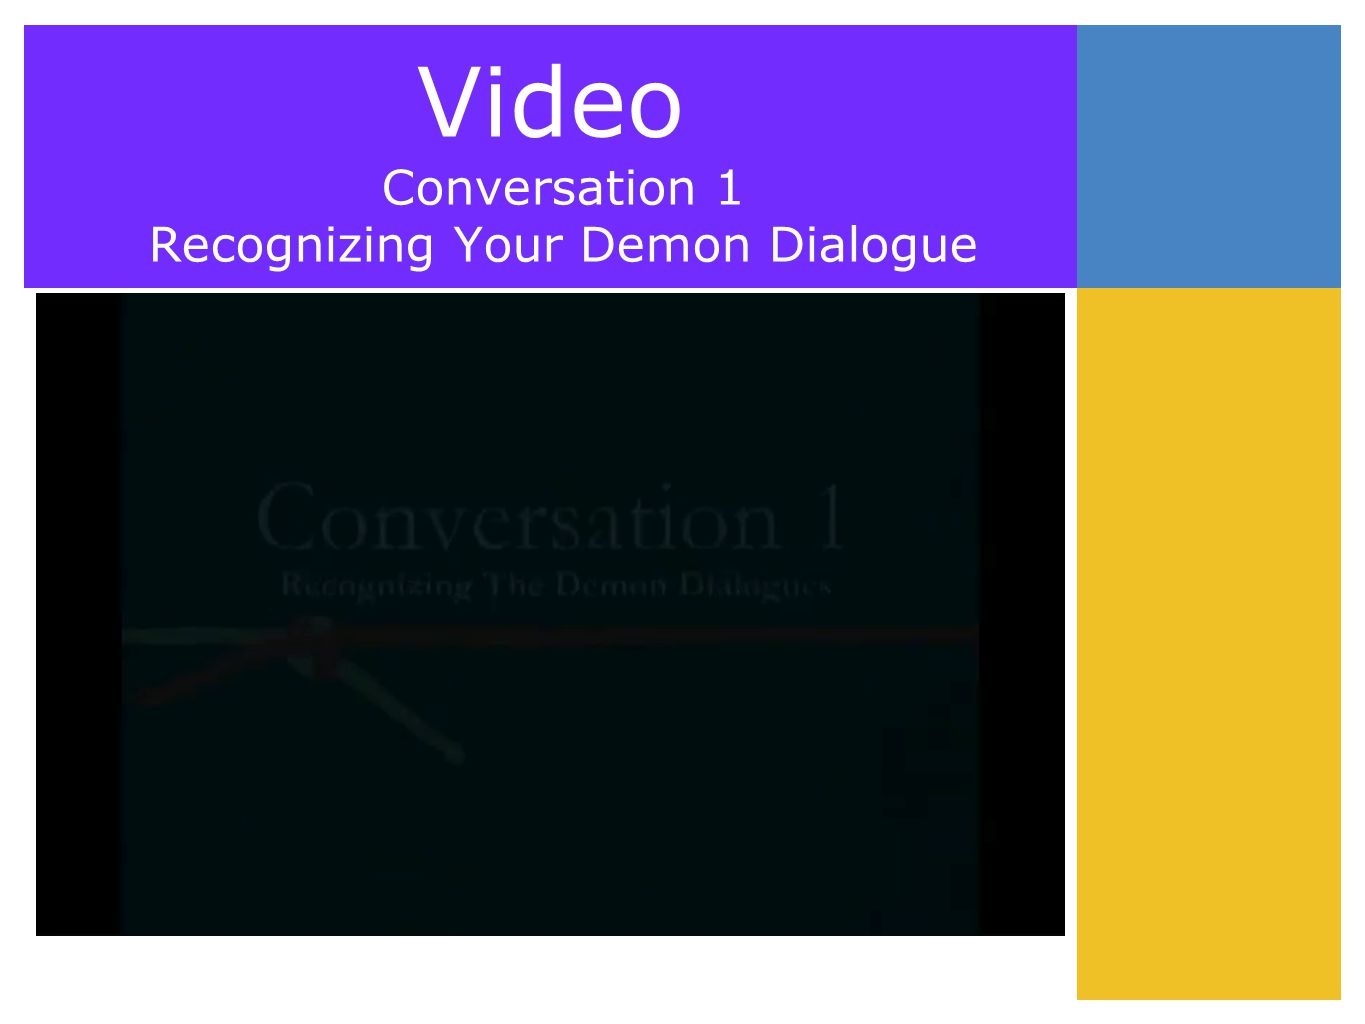 Video Conversation 1 Recognizing Your Demon Dialogue